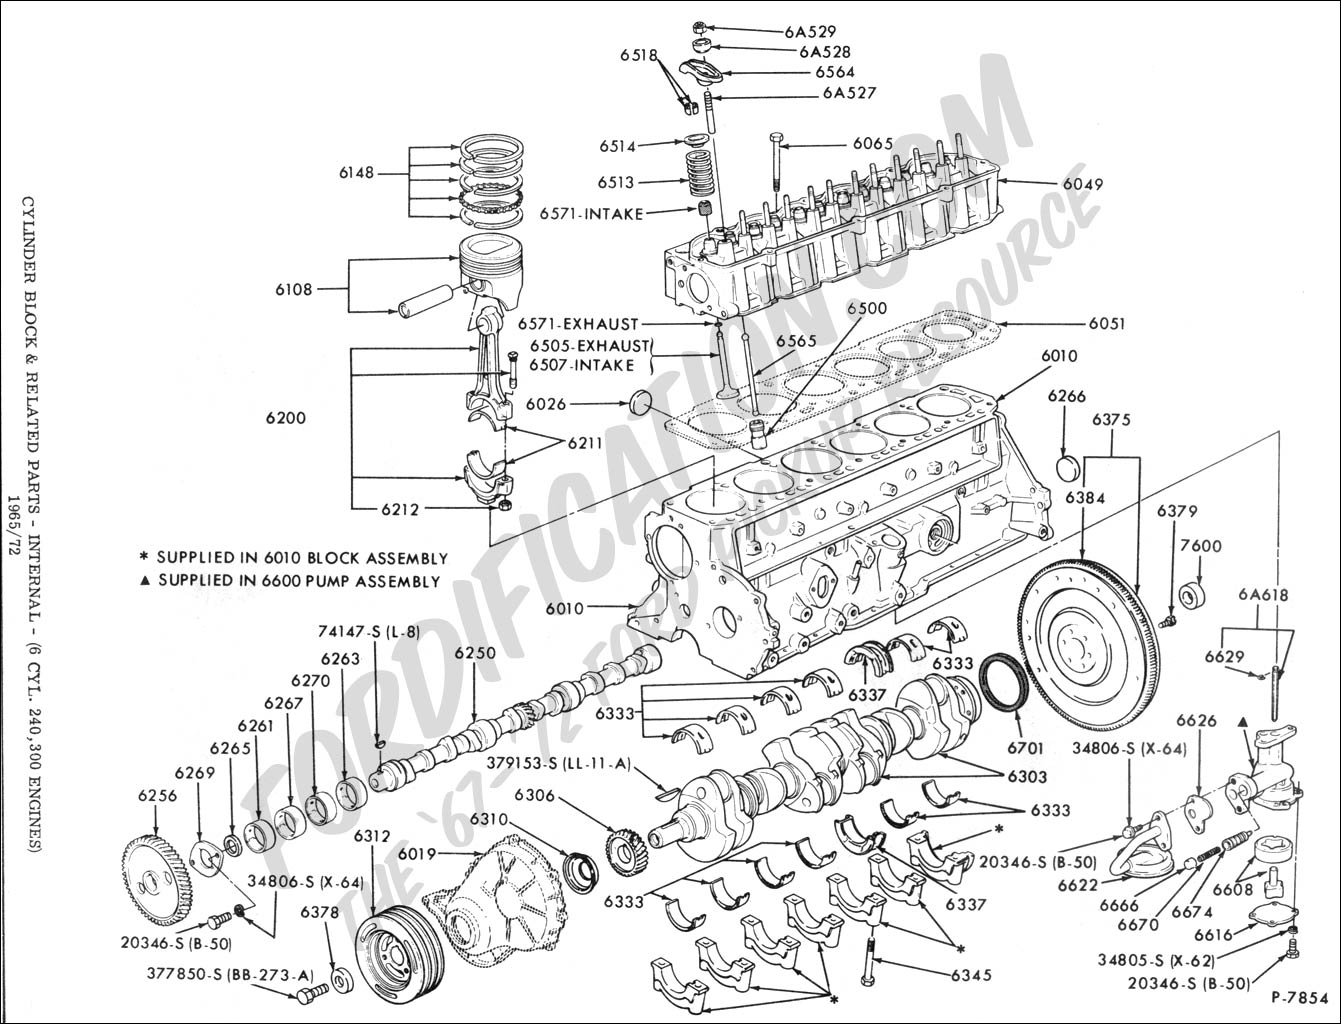 1966 Mustang 289 Wiring Diagram on 1956 ford f100 gas tank